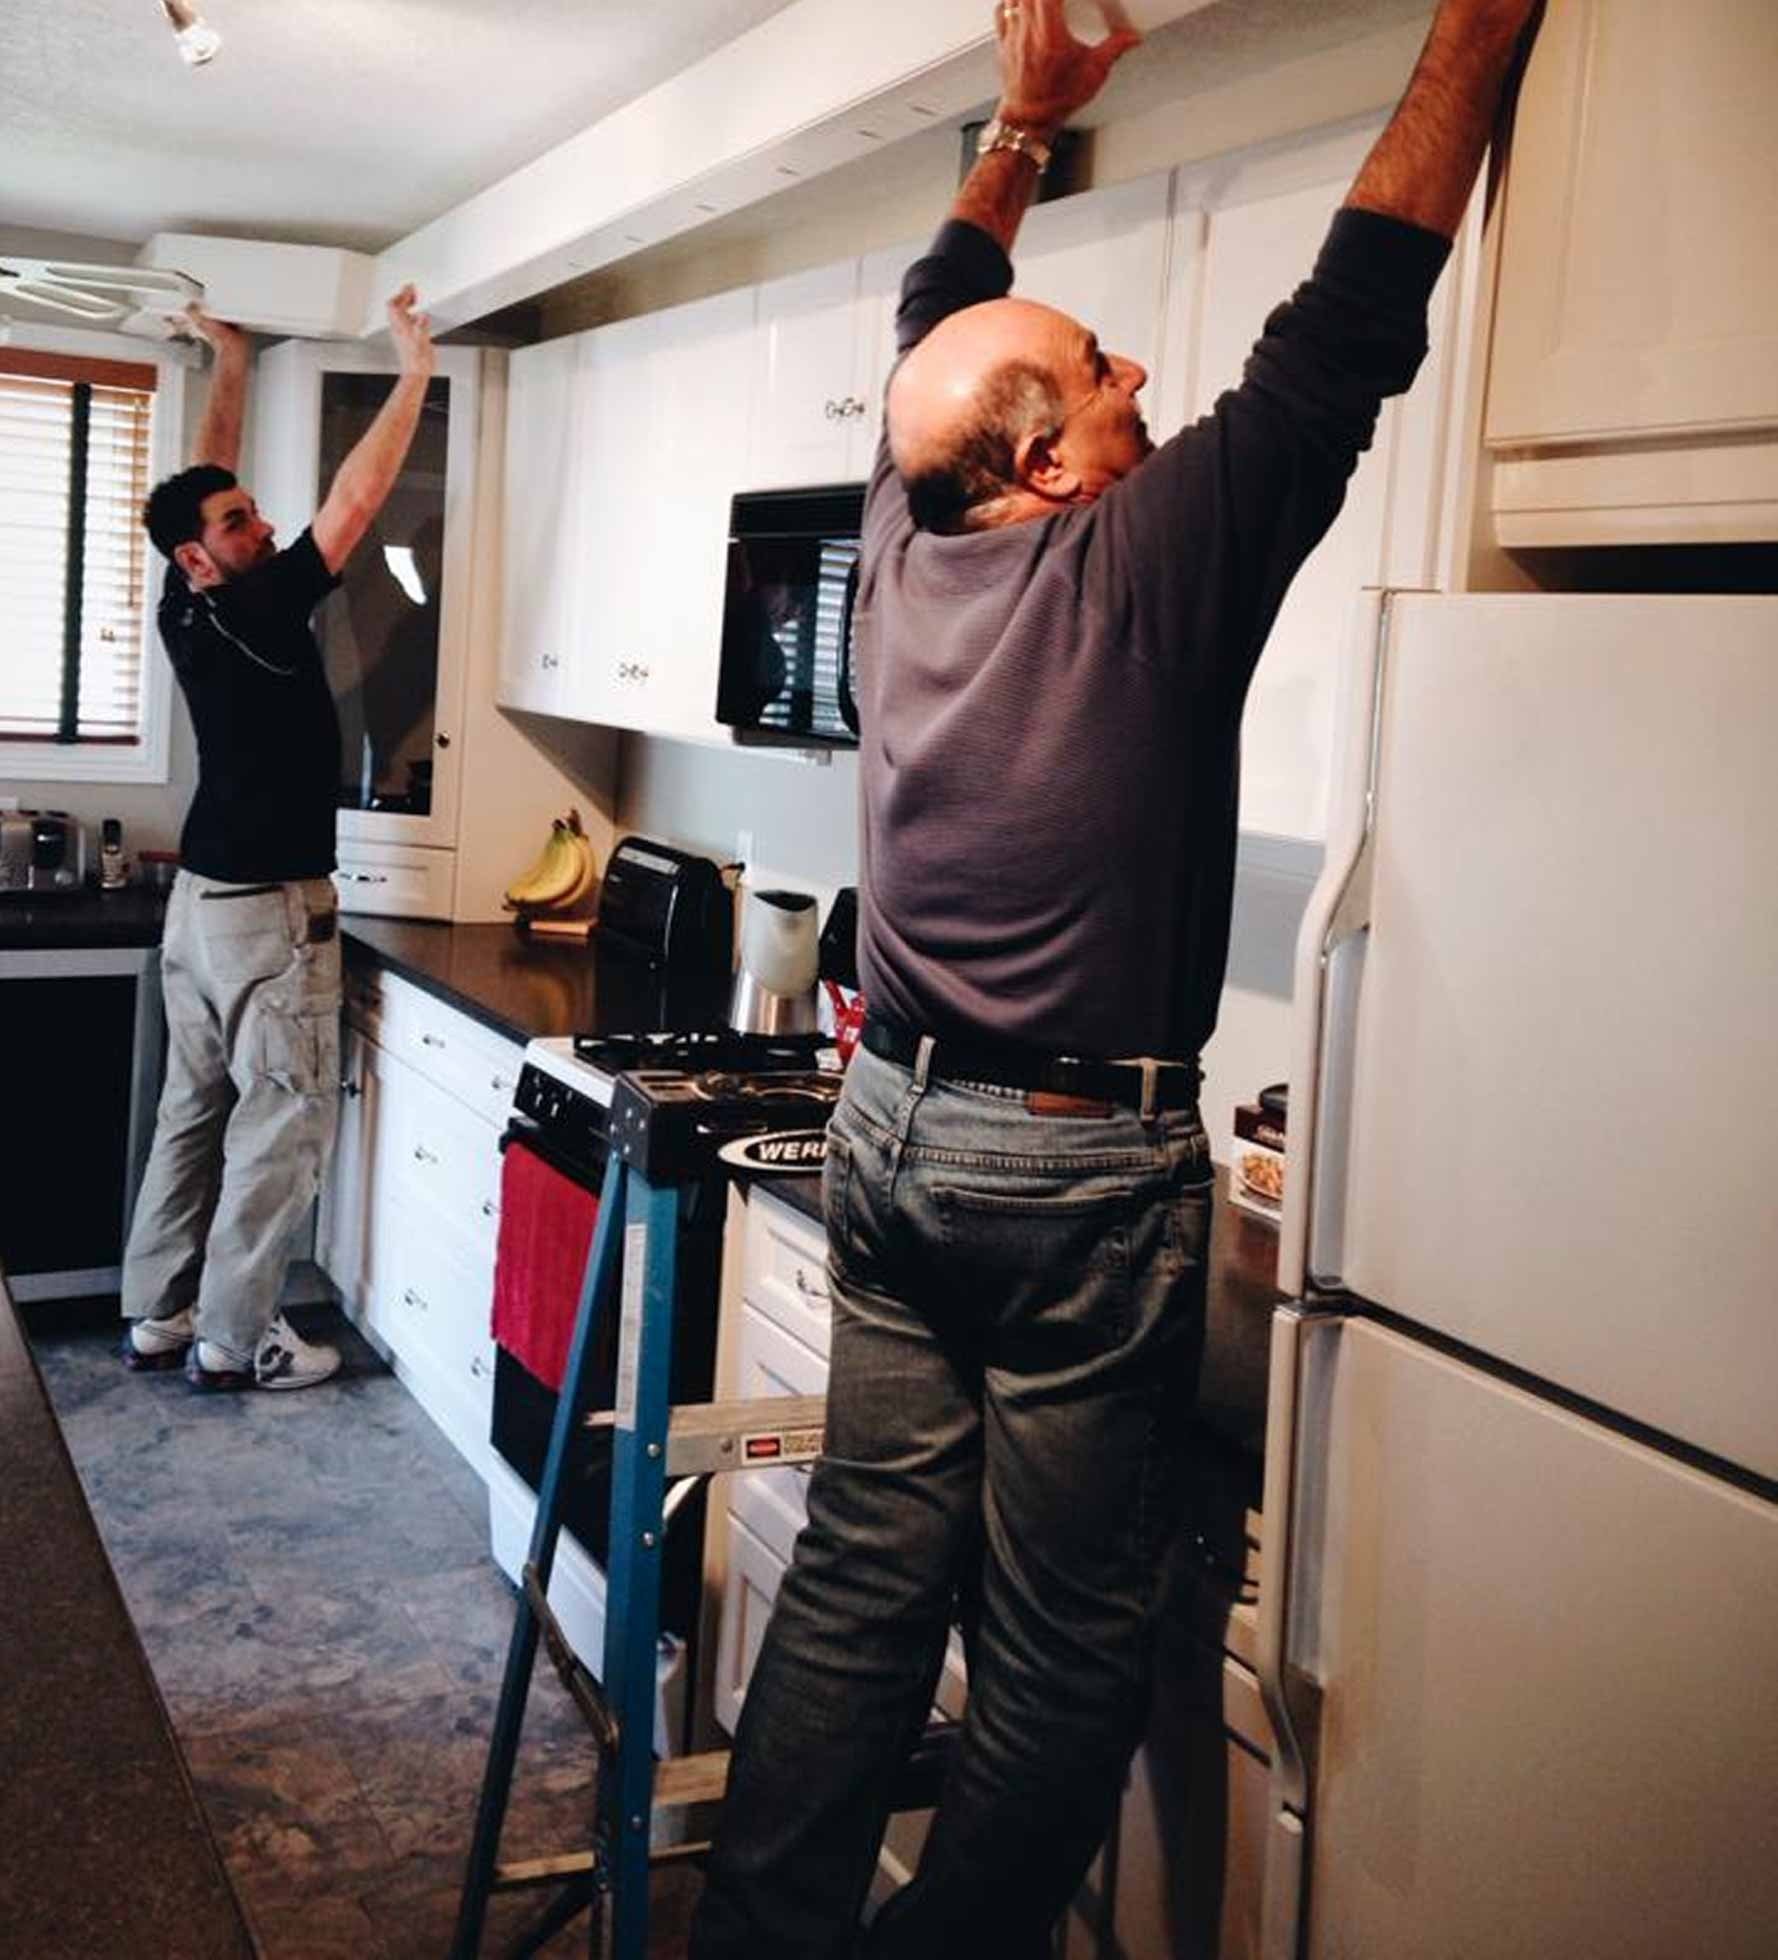 People installing cabinets